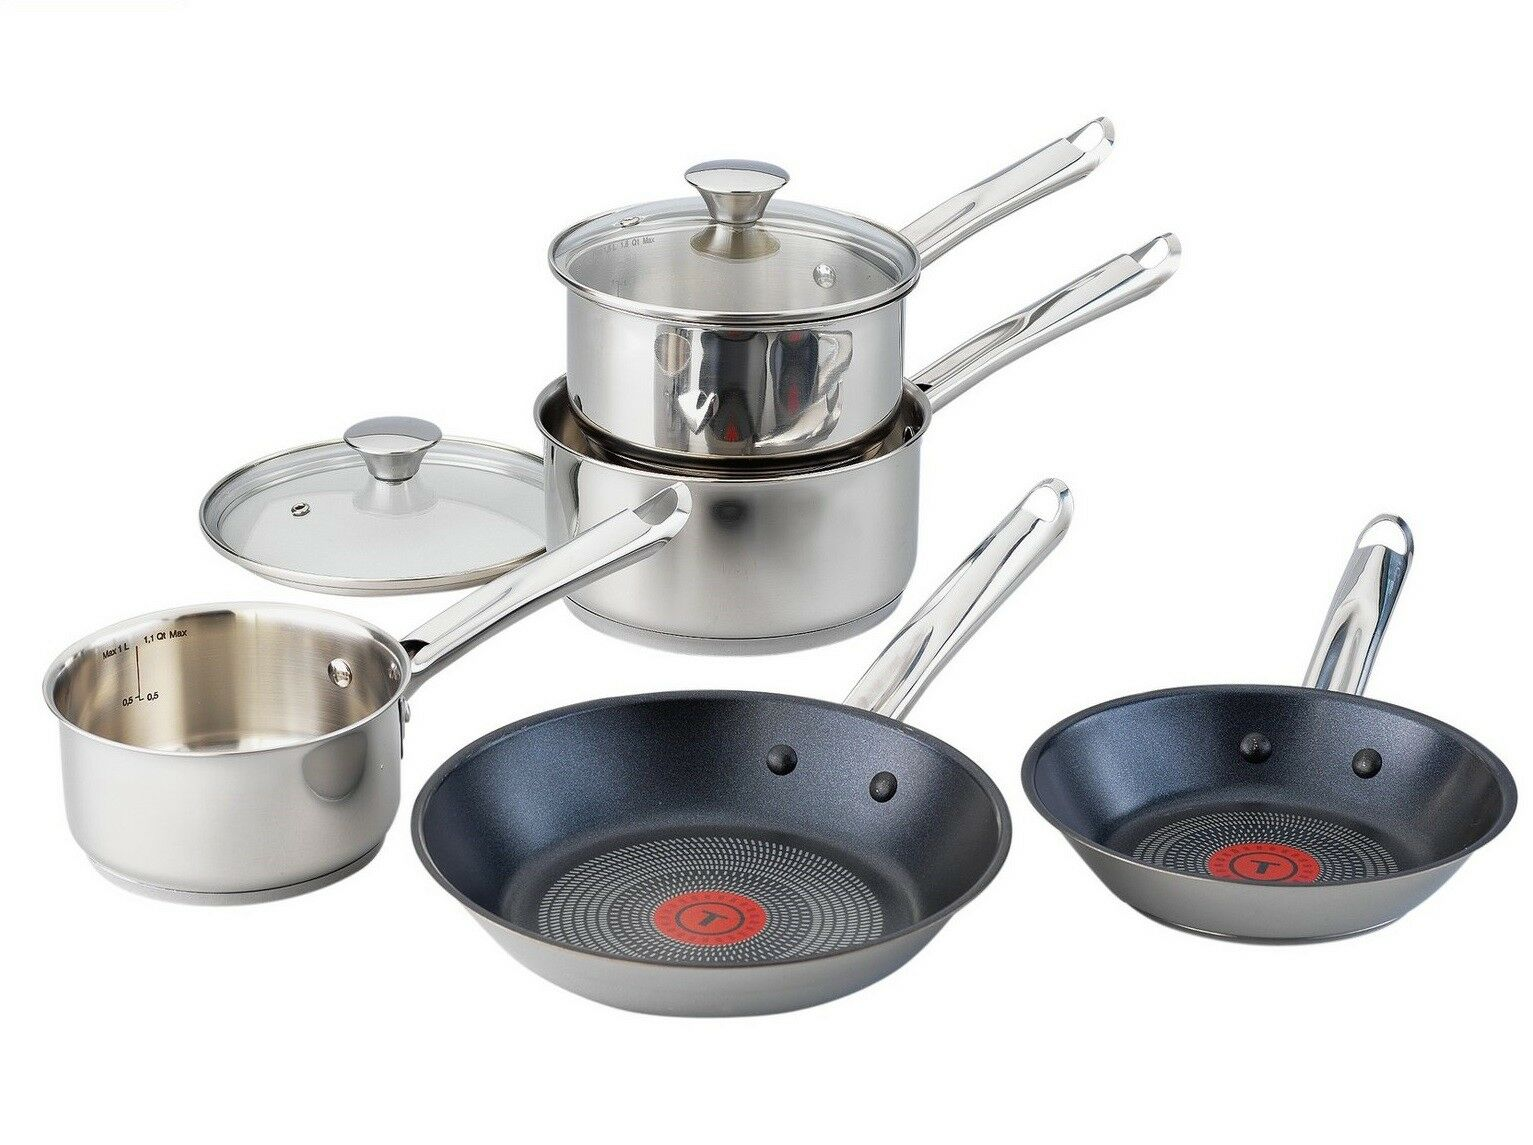 tefal elementary 5 piece pan set non stick induction stainless steel glass lids. Black Bedroom Furniture Sets. Home Design Ideas